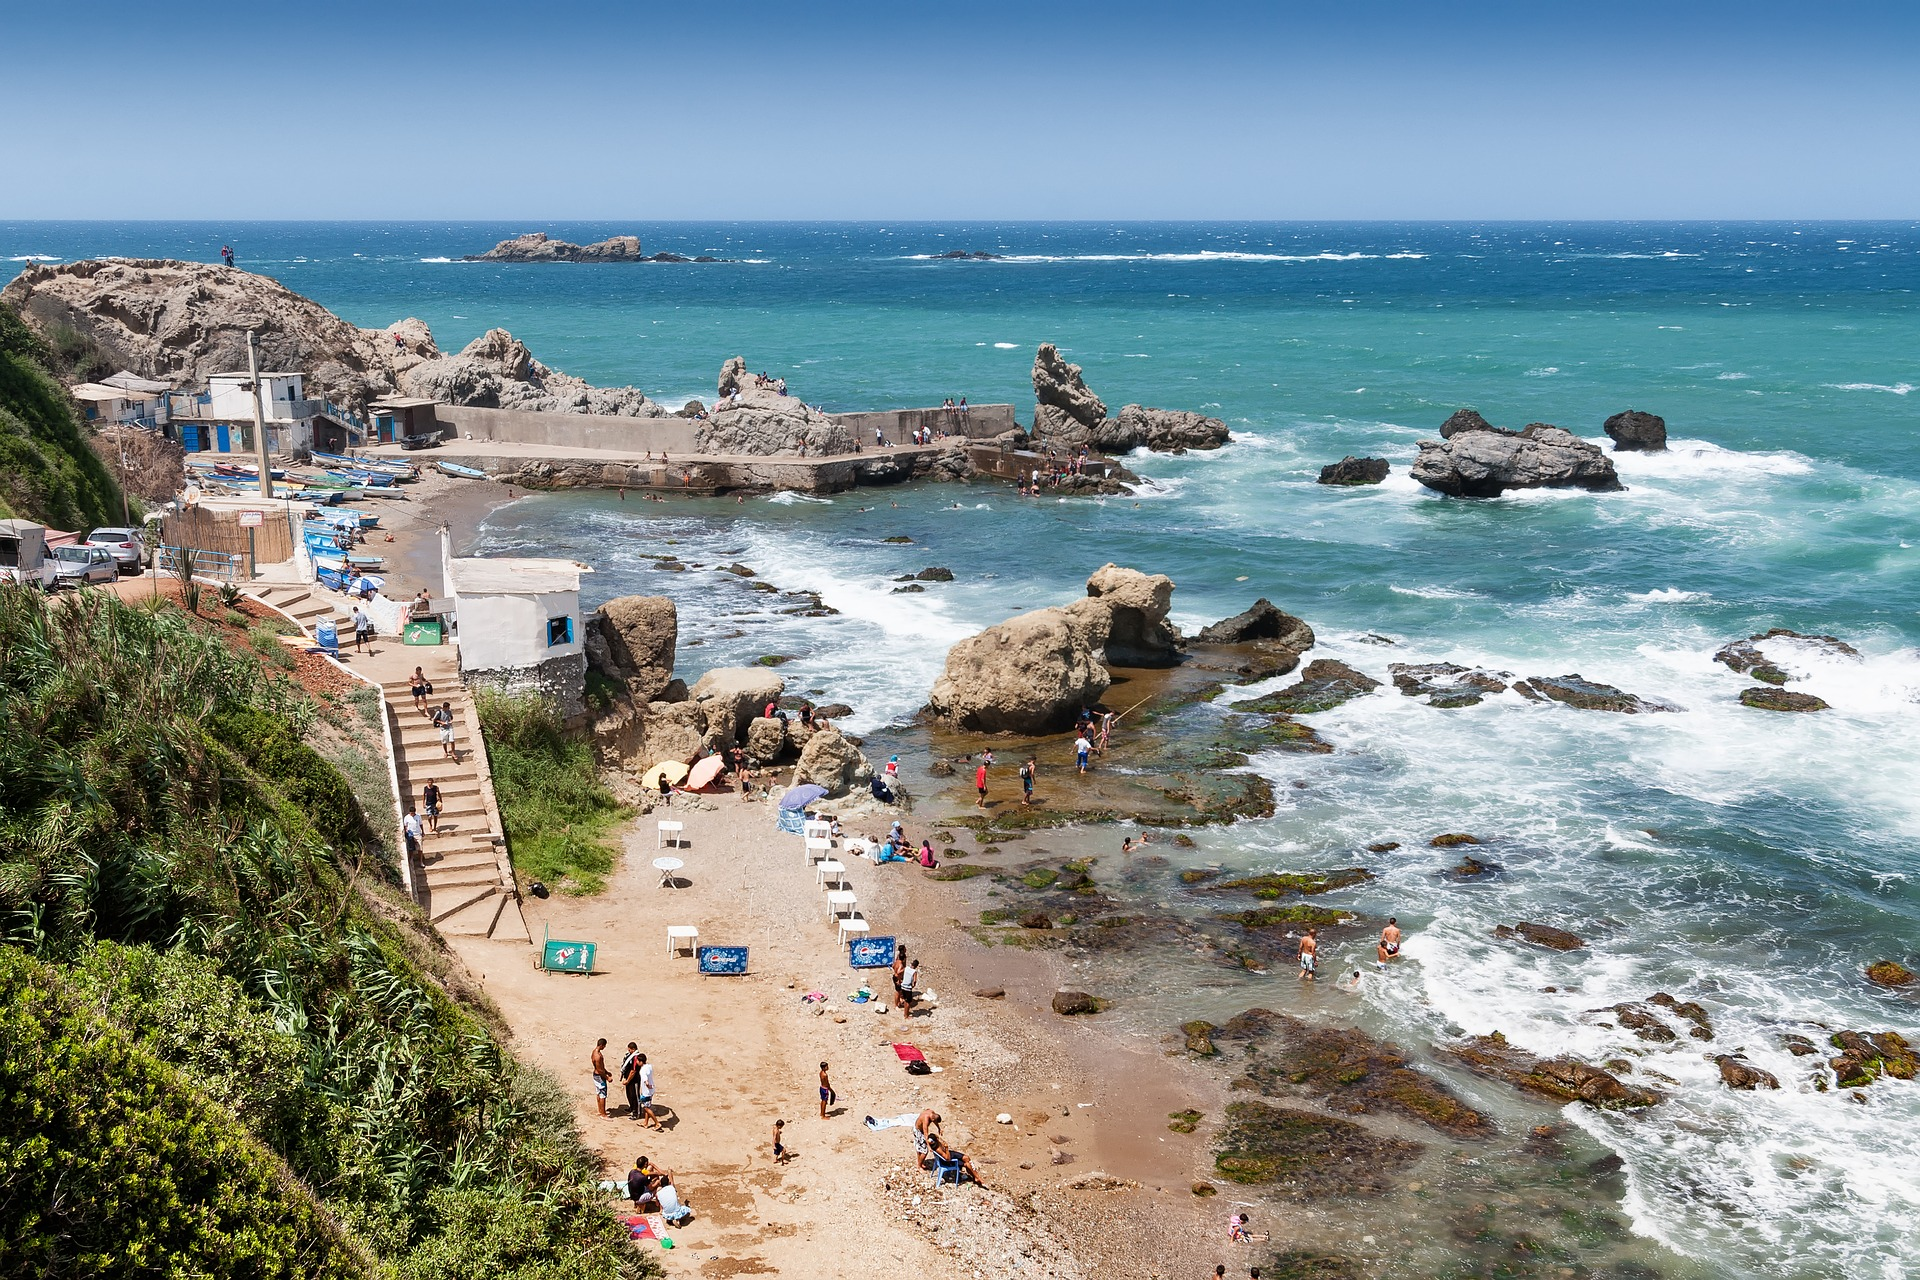 Algerian coast with a view on the Mediterranean and people on the beach.